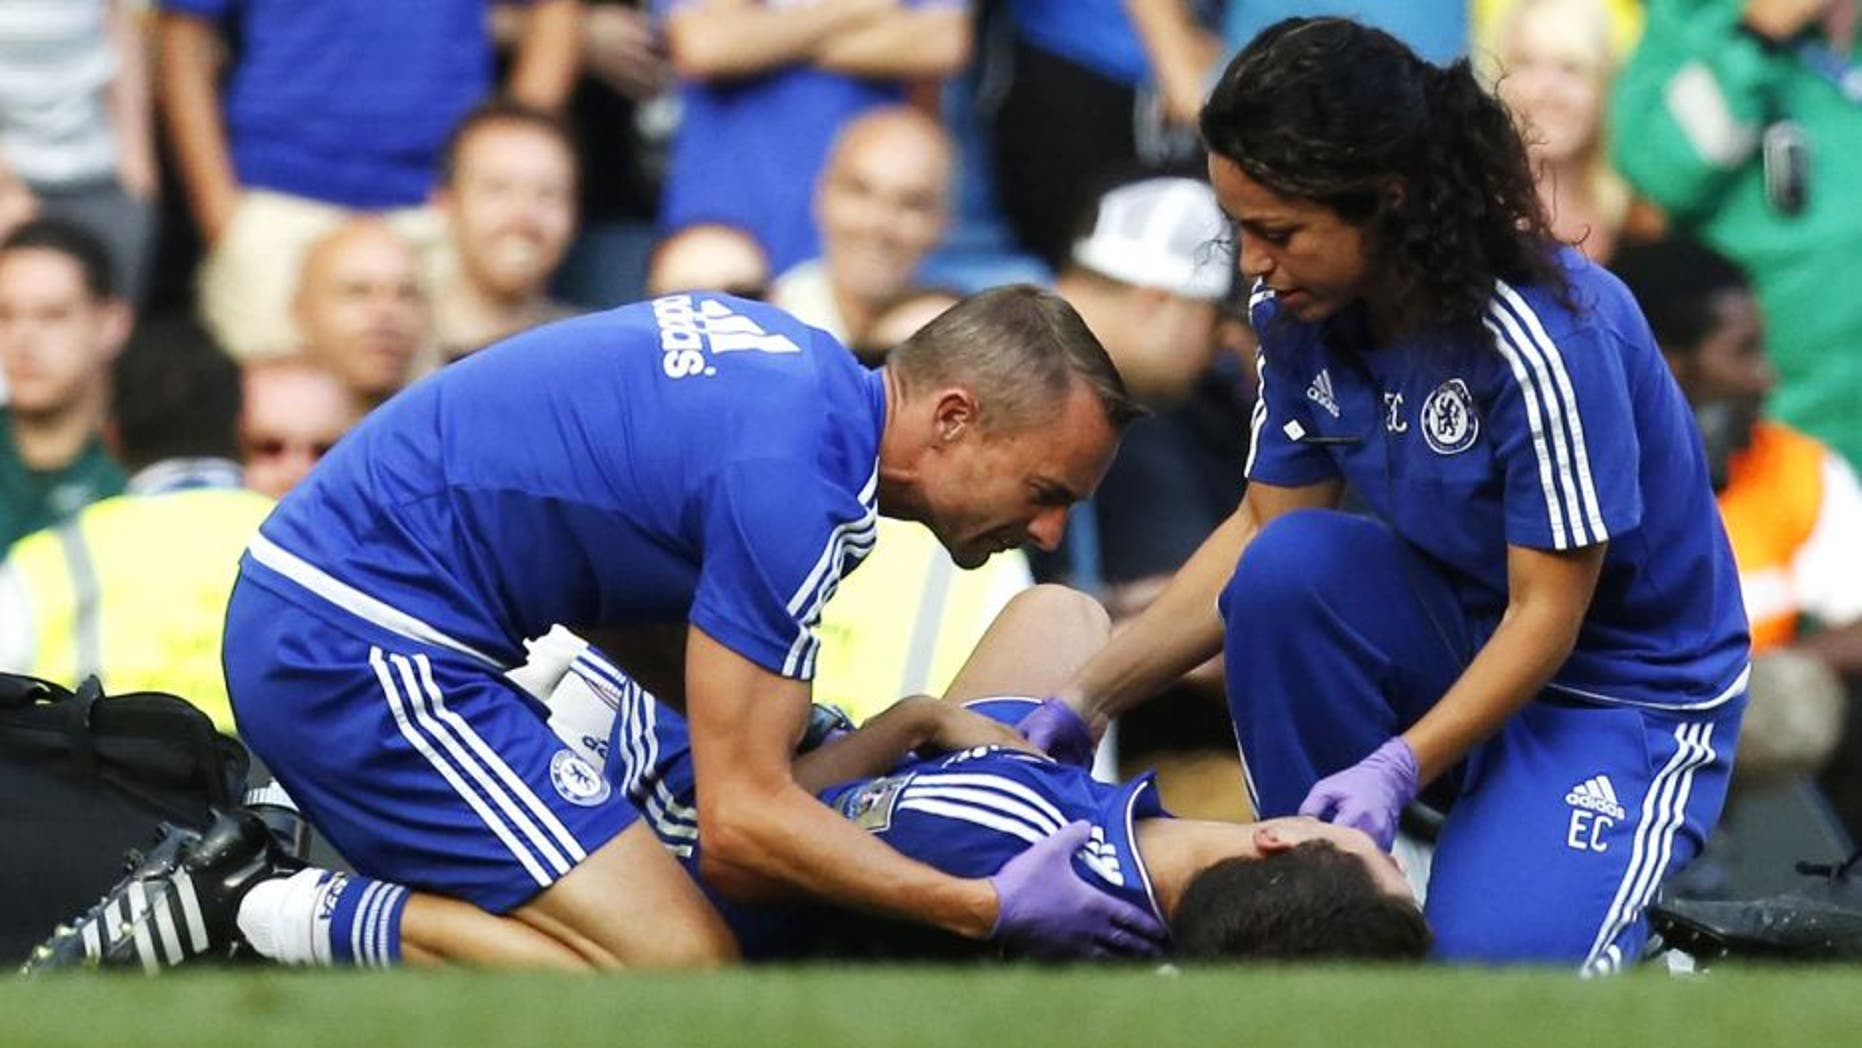 """Chelsea doctor (R) Eva Carneiro and head physio Jon Fearn (L) treat Chelsea's Belgian midfielder Eden Hazard late on during the English Premier League football match between Chelsea and Swansea City at Stamford Bridge in London on August 8, 2015. Chelsea have sidelined team doctor Eva Carneiro from match-day duties after she fell foul of manager Jose Mourinho, according to British media reports on August 11, 2015. Mourinho criticised Carneiro after she ran on the pitch to treat Eden Hazard in stoppage time of Chelsea's 2-2 draw at home to Swansea City on August 8, saying she did not """"understand the game"""". AFP PHOTO / IAN KINGTON RESTRICTED TO EDITORIAL USE. No use with unauthorized audio, video, data, fixture lists, club/league logos or 'live' services. Online in-match use limited to 75 images, no video emulation. No use in betting, games or single club/league/player publications. (Photo credit should read IAN KINGTON/AFP/Getty Images)"""